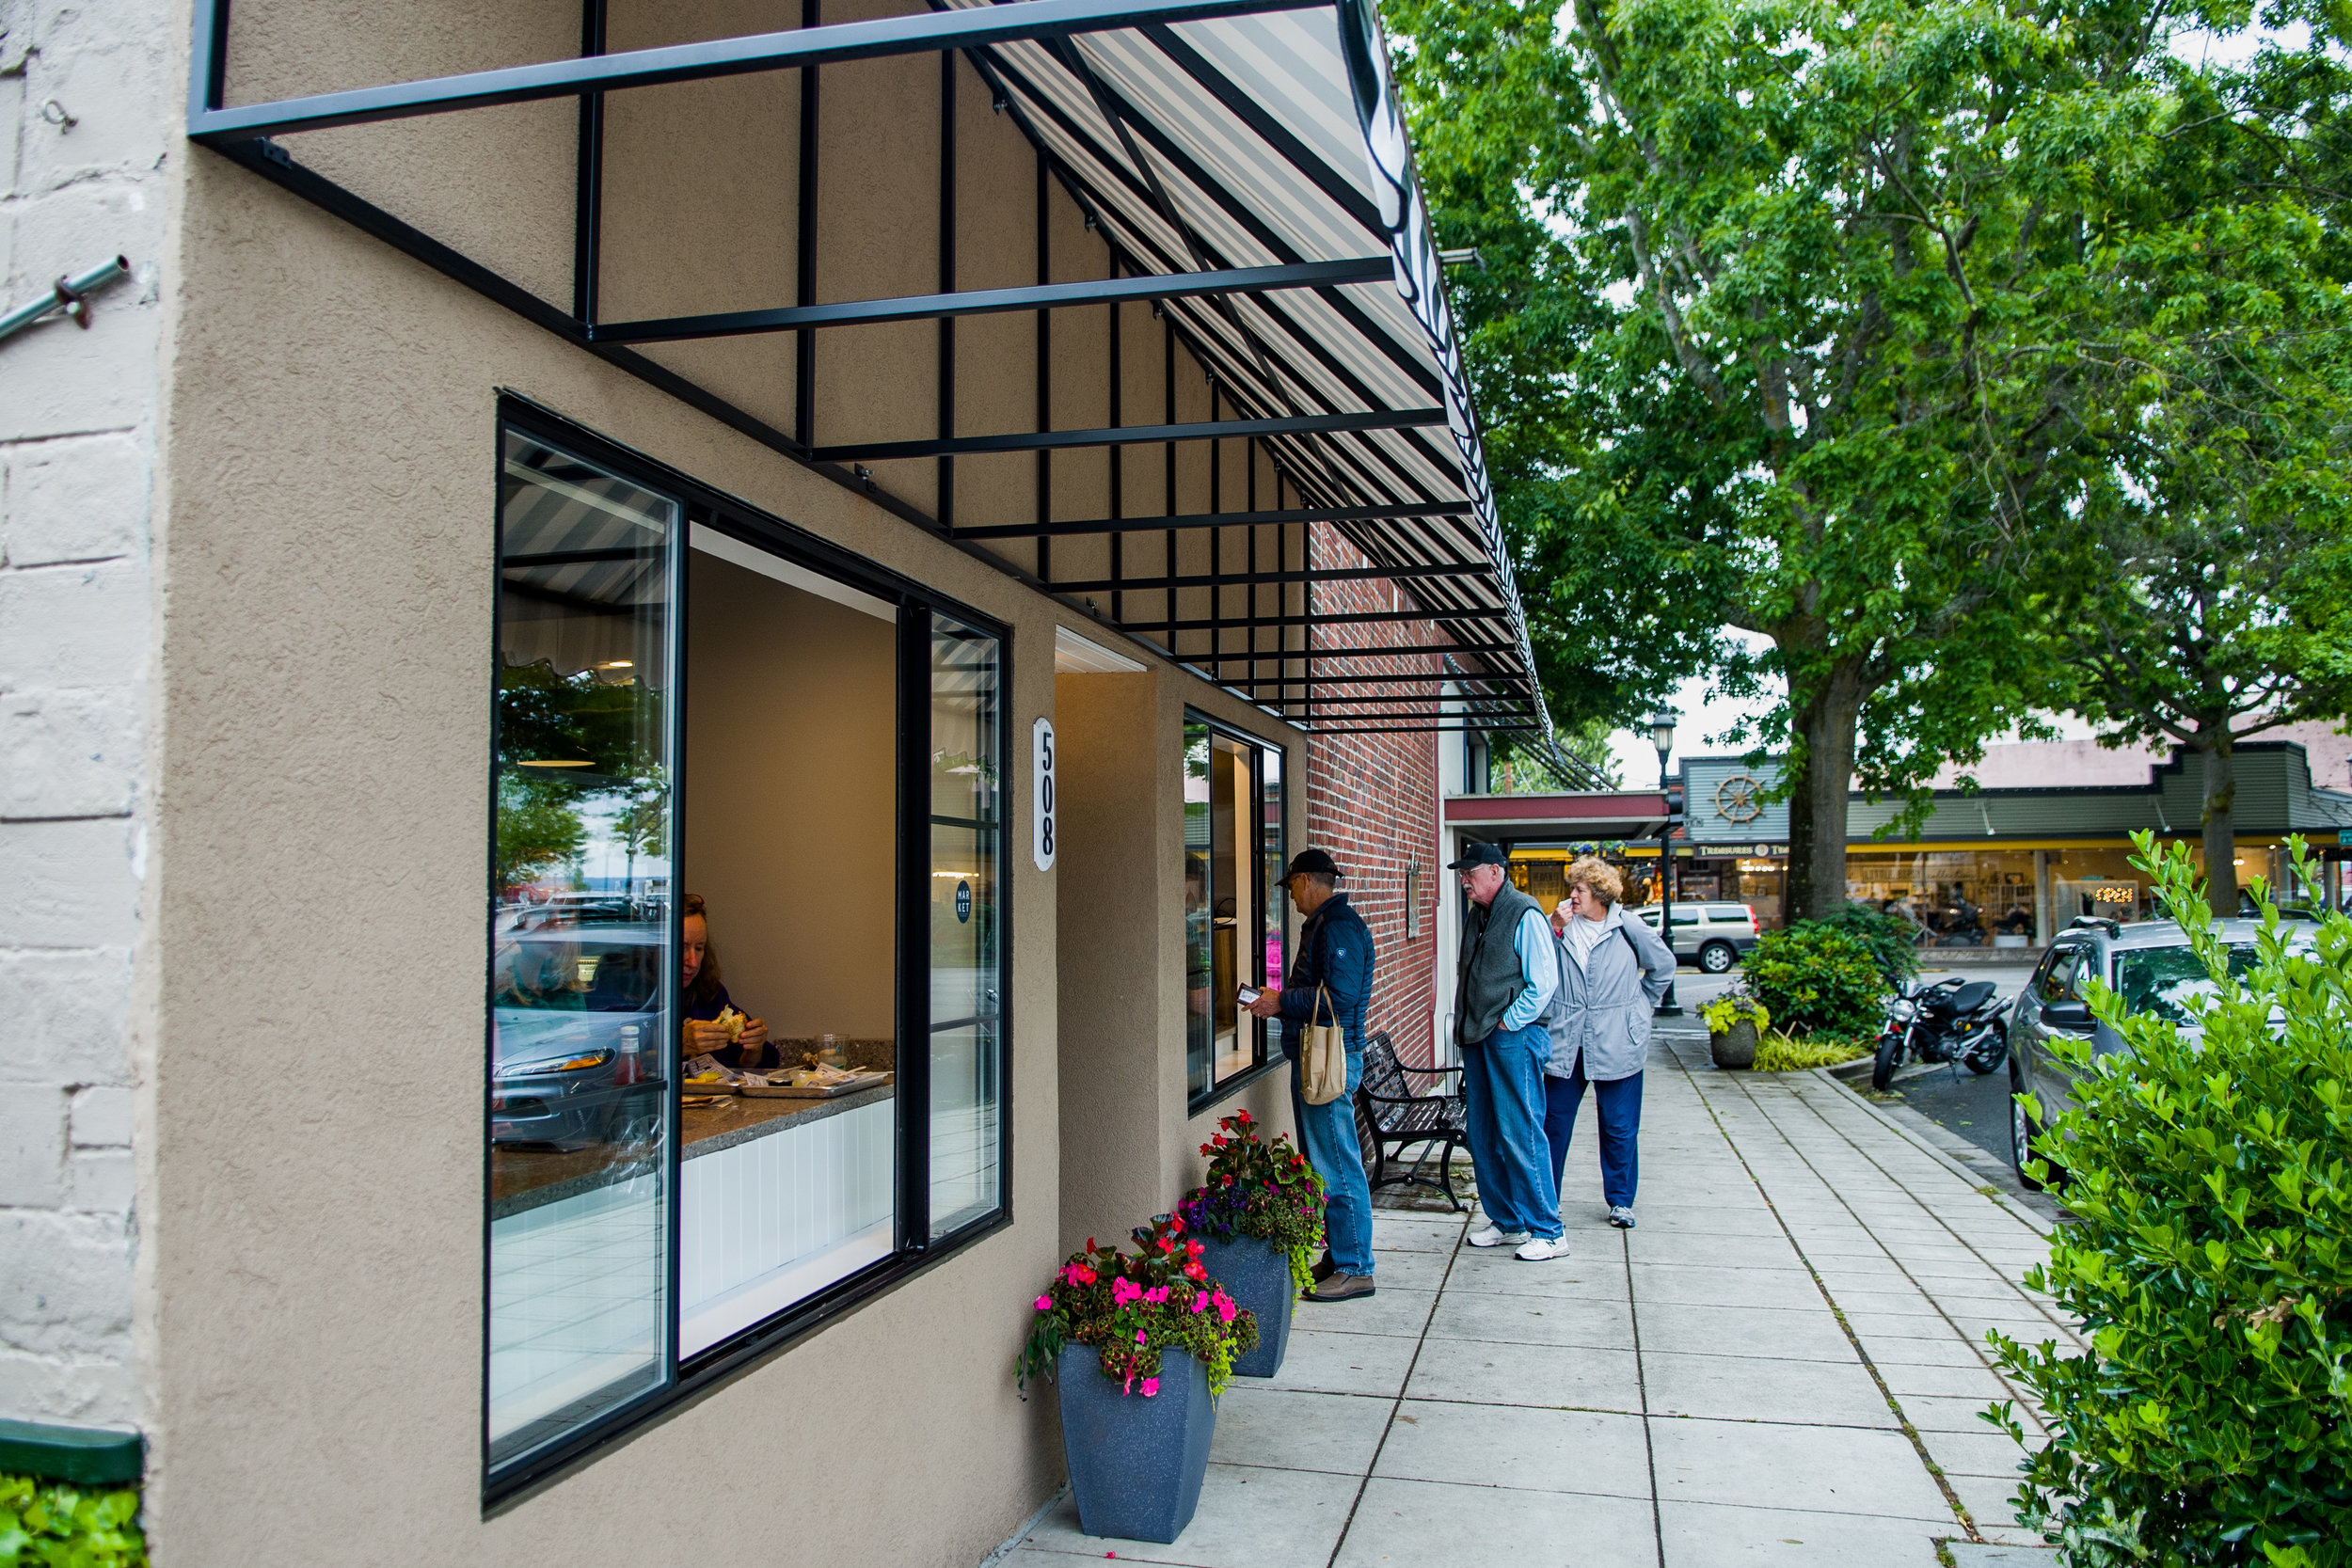 107-market-edmonds-petrichor-photo.jpg